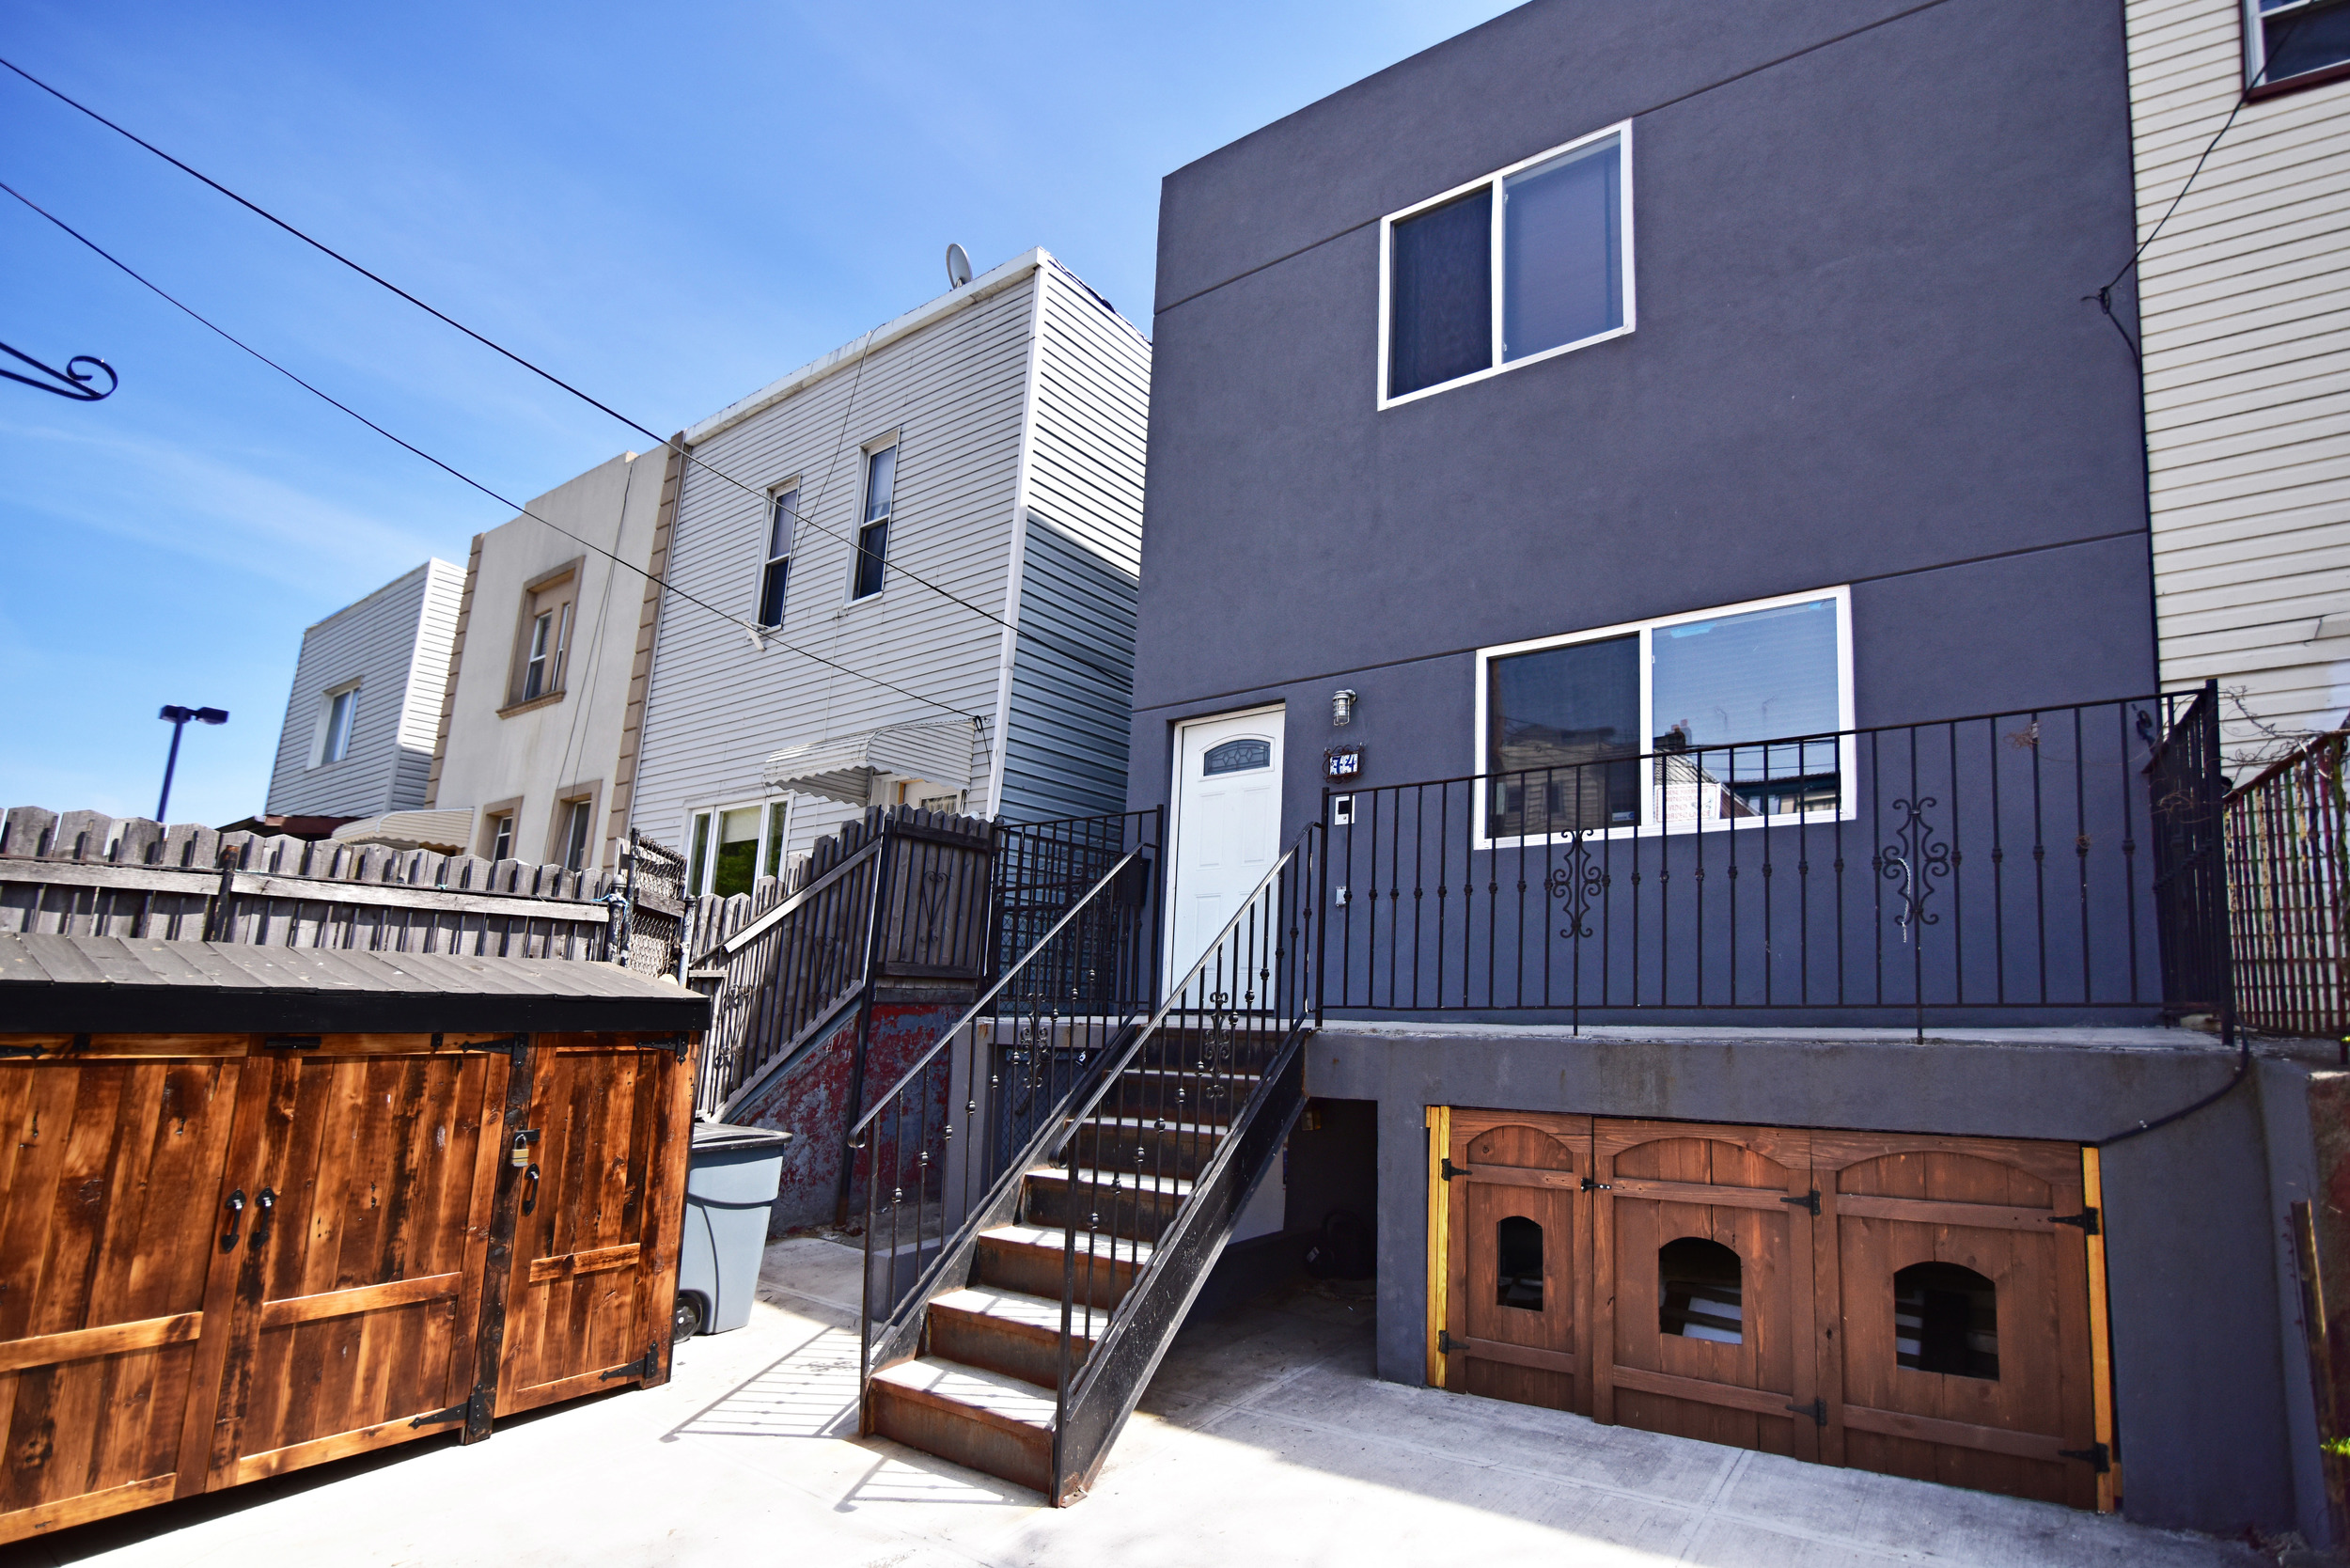 Sold | Bushwick | single Fam | $950,000